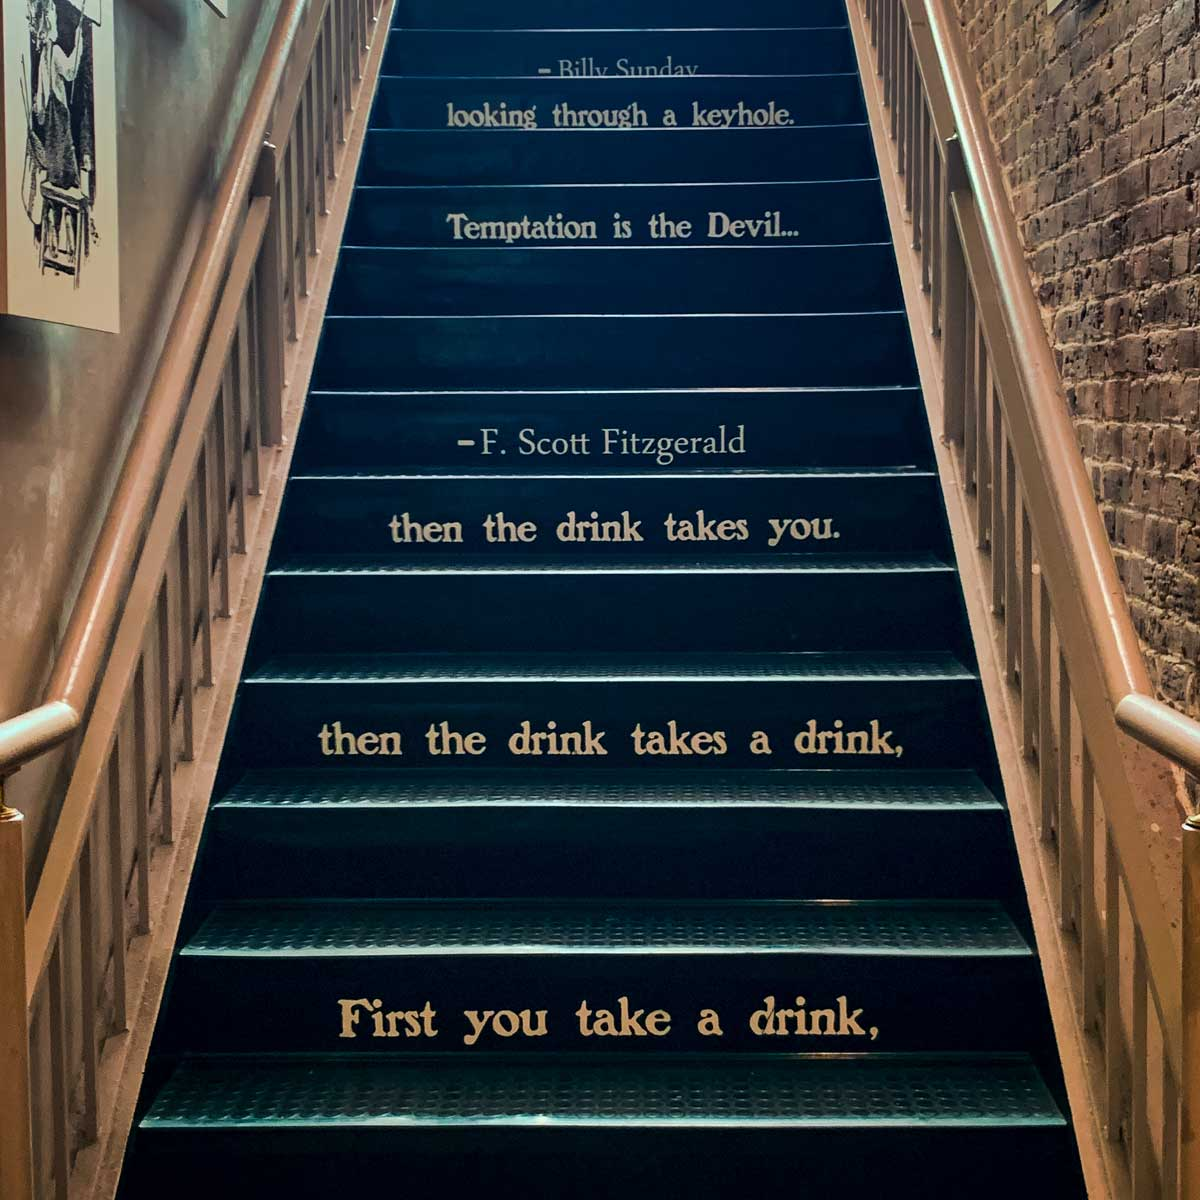 The stairwell inside the American Prohibition Museum